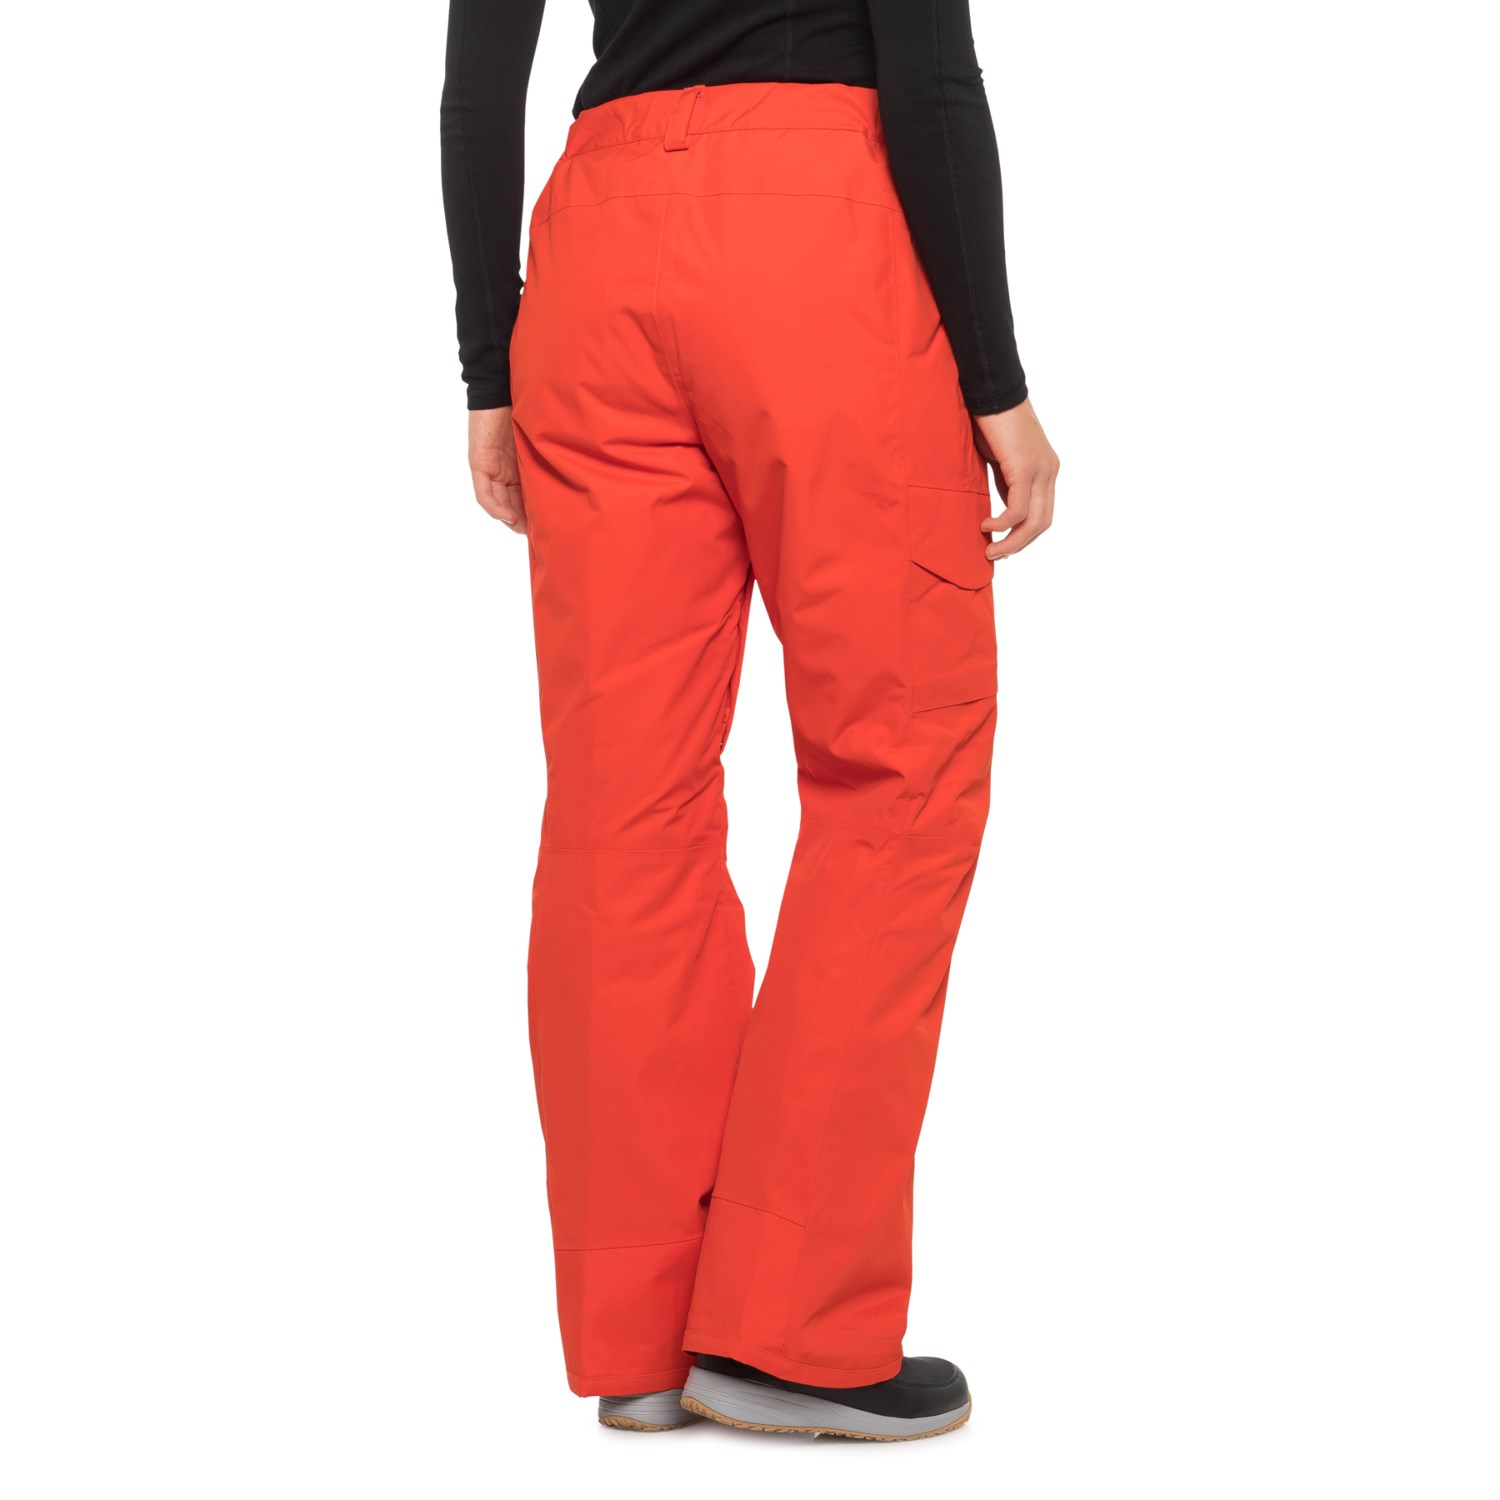 4f36153f6b9 The North Face Freedom Ski Pants - Waterproof, Insulated, Short (For Women)